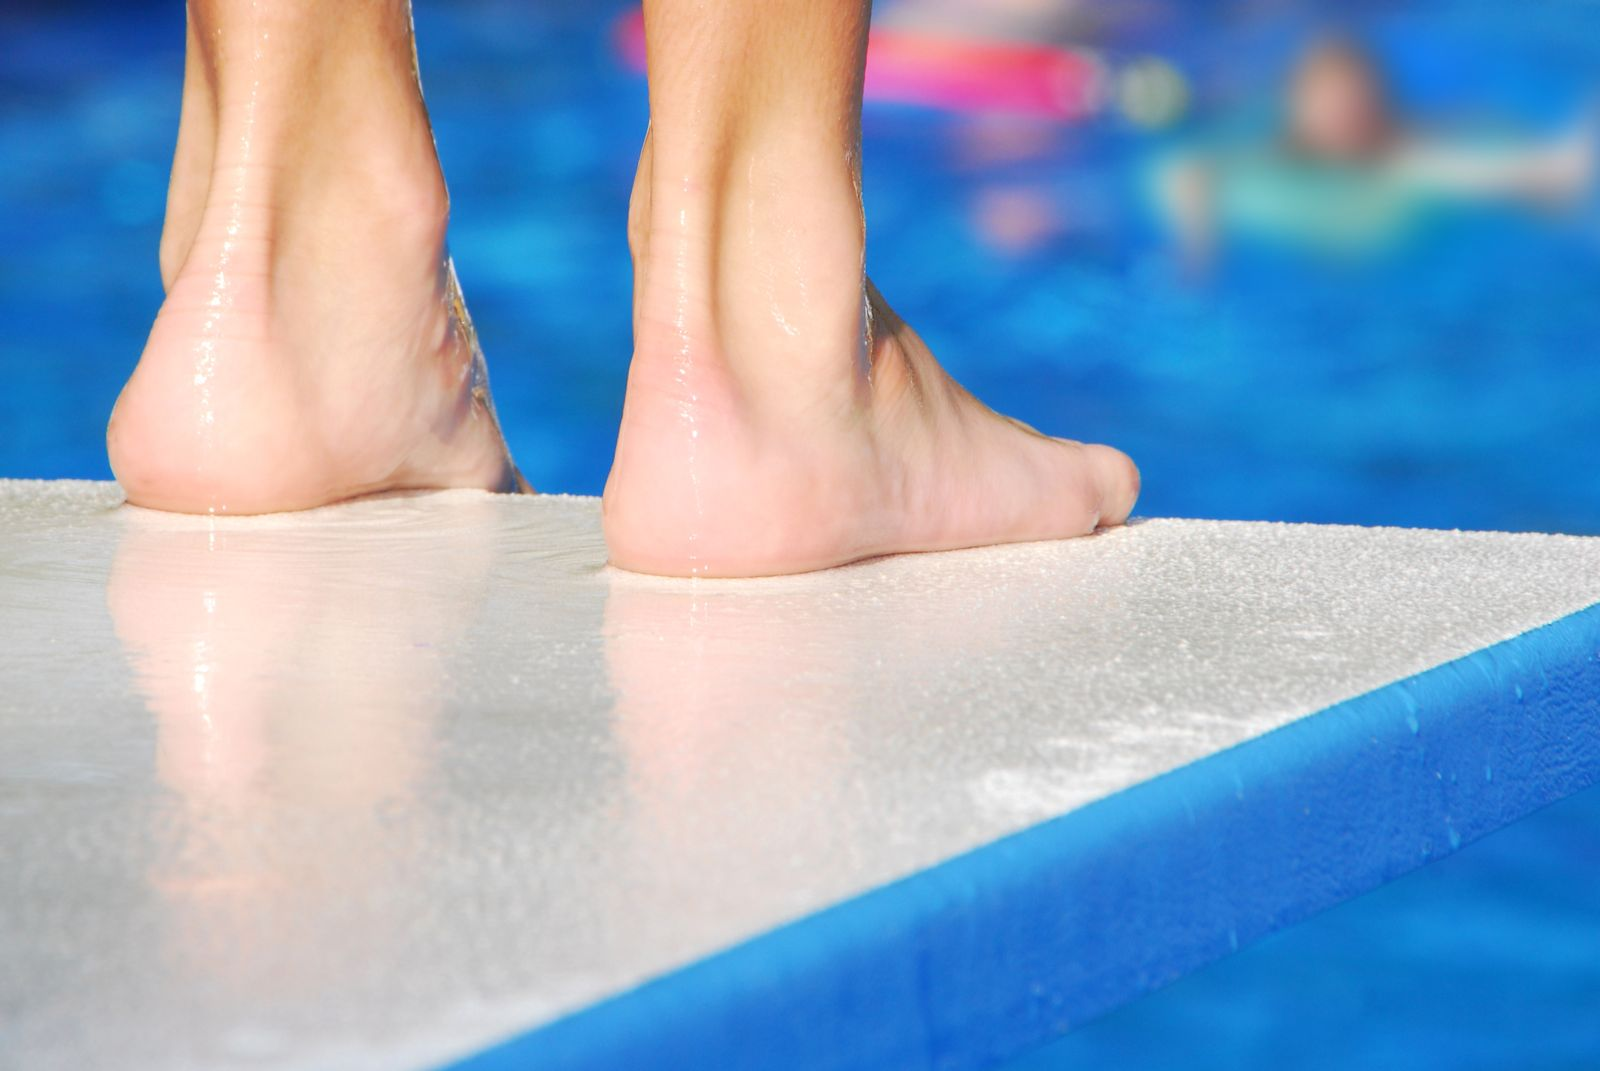 Houston podiatrist says being barefoot around the pool can cause toenail fungus